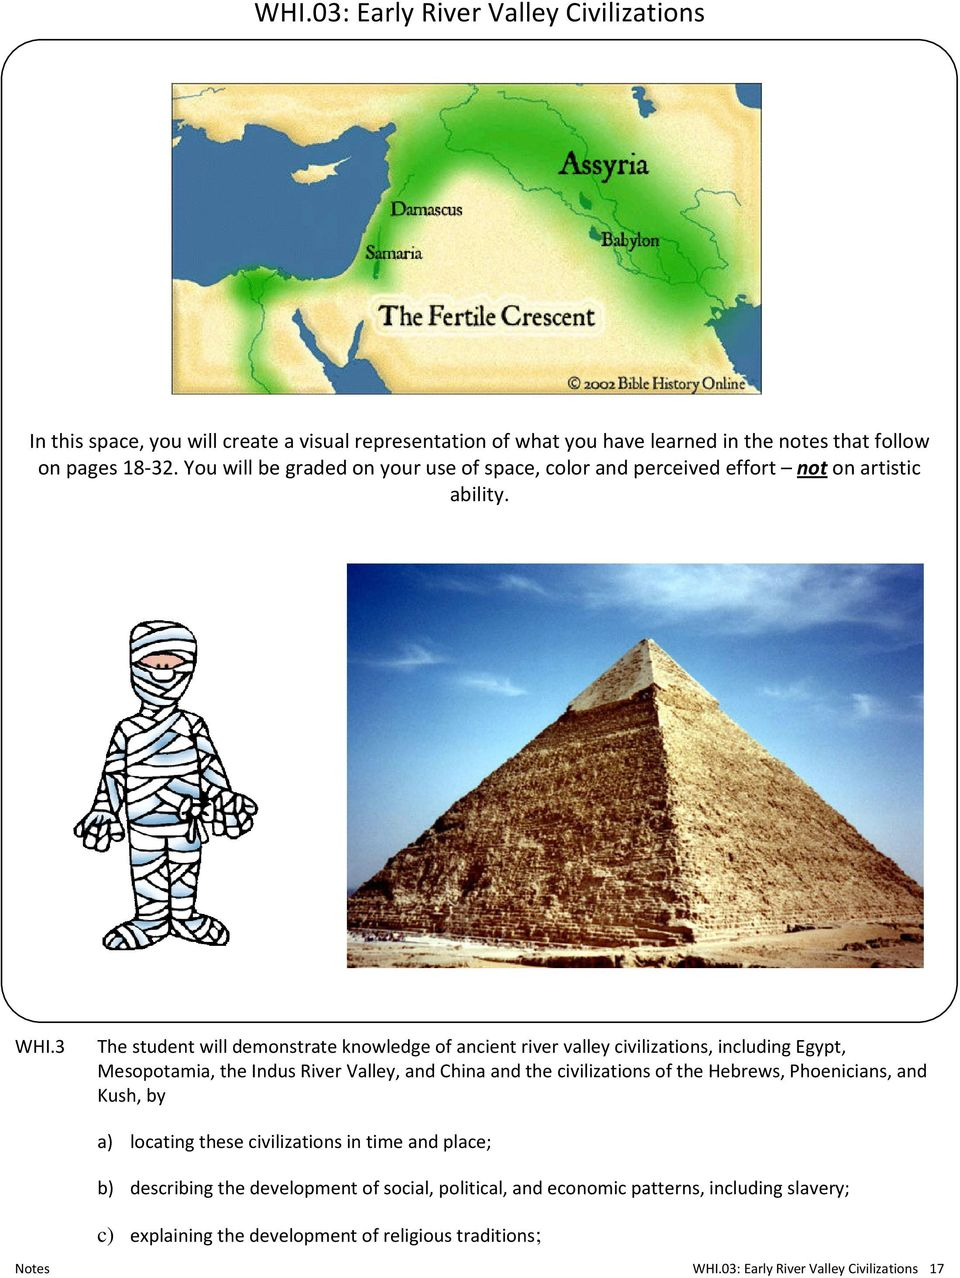 3 The student will demonstrate knowledge of ancient river valley civilizations, including Egypt, Mesopotamia, the Indus River Valley, and China and the civilizations of the